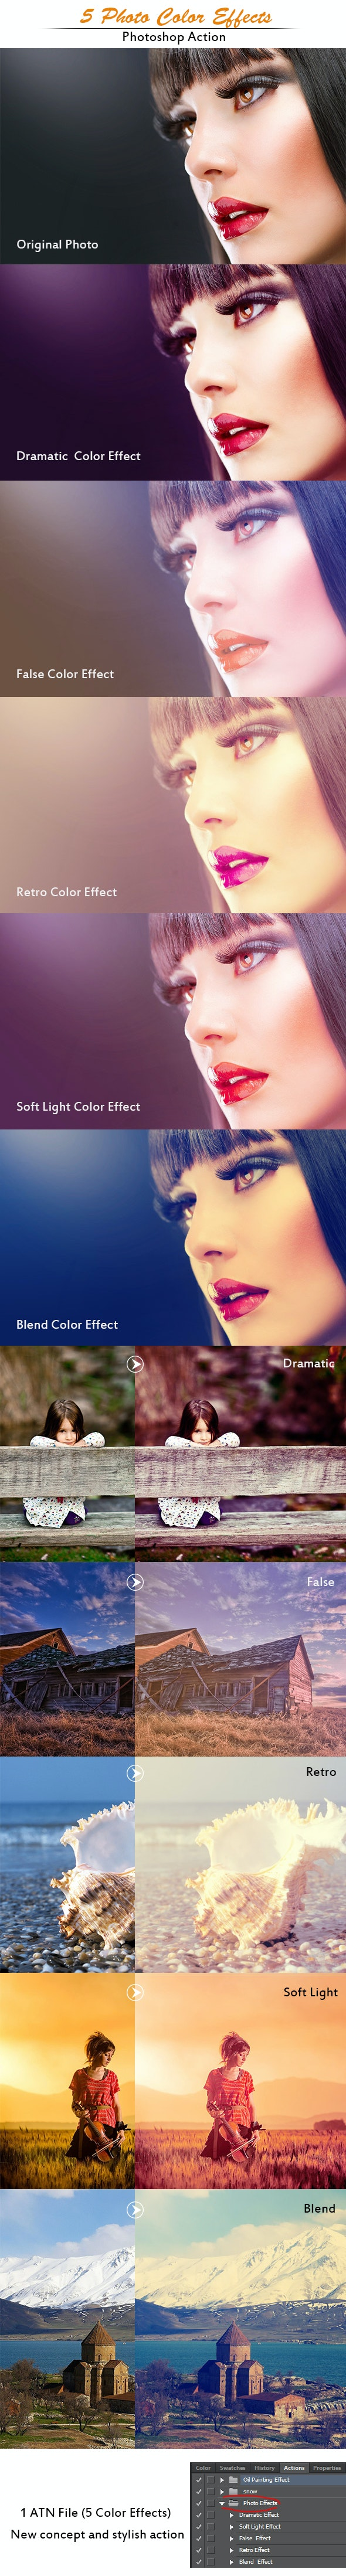 Photo Color Effects  - Photoshop Add-ons